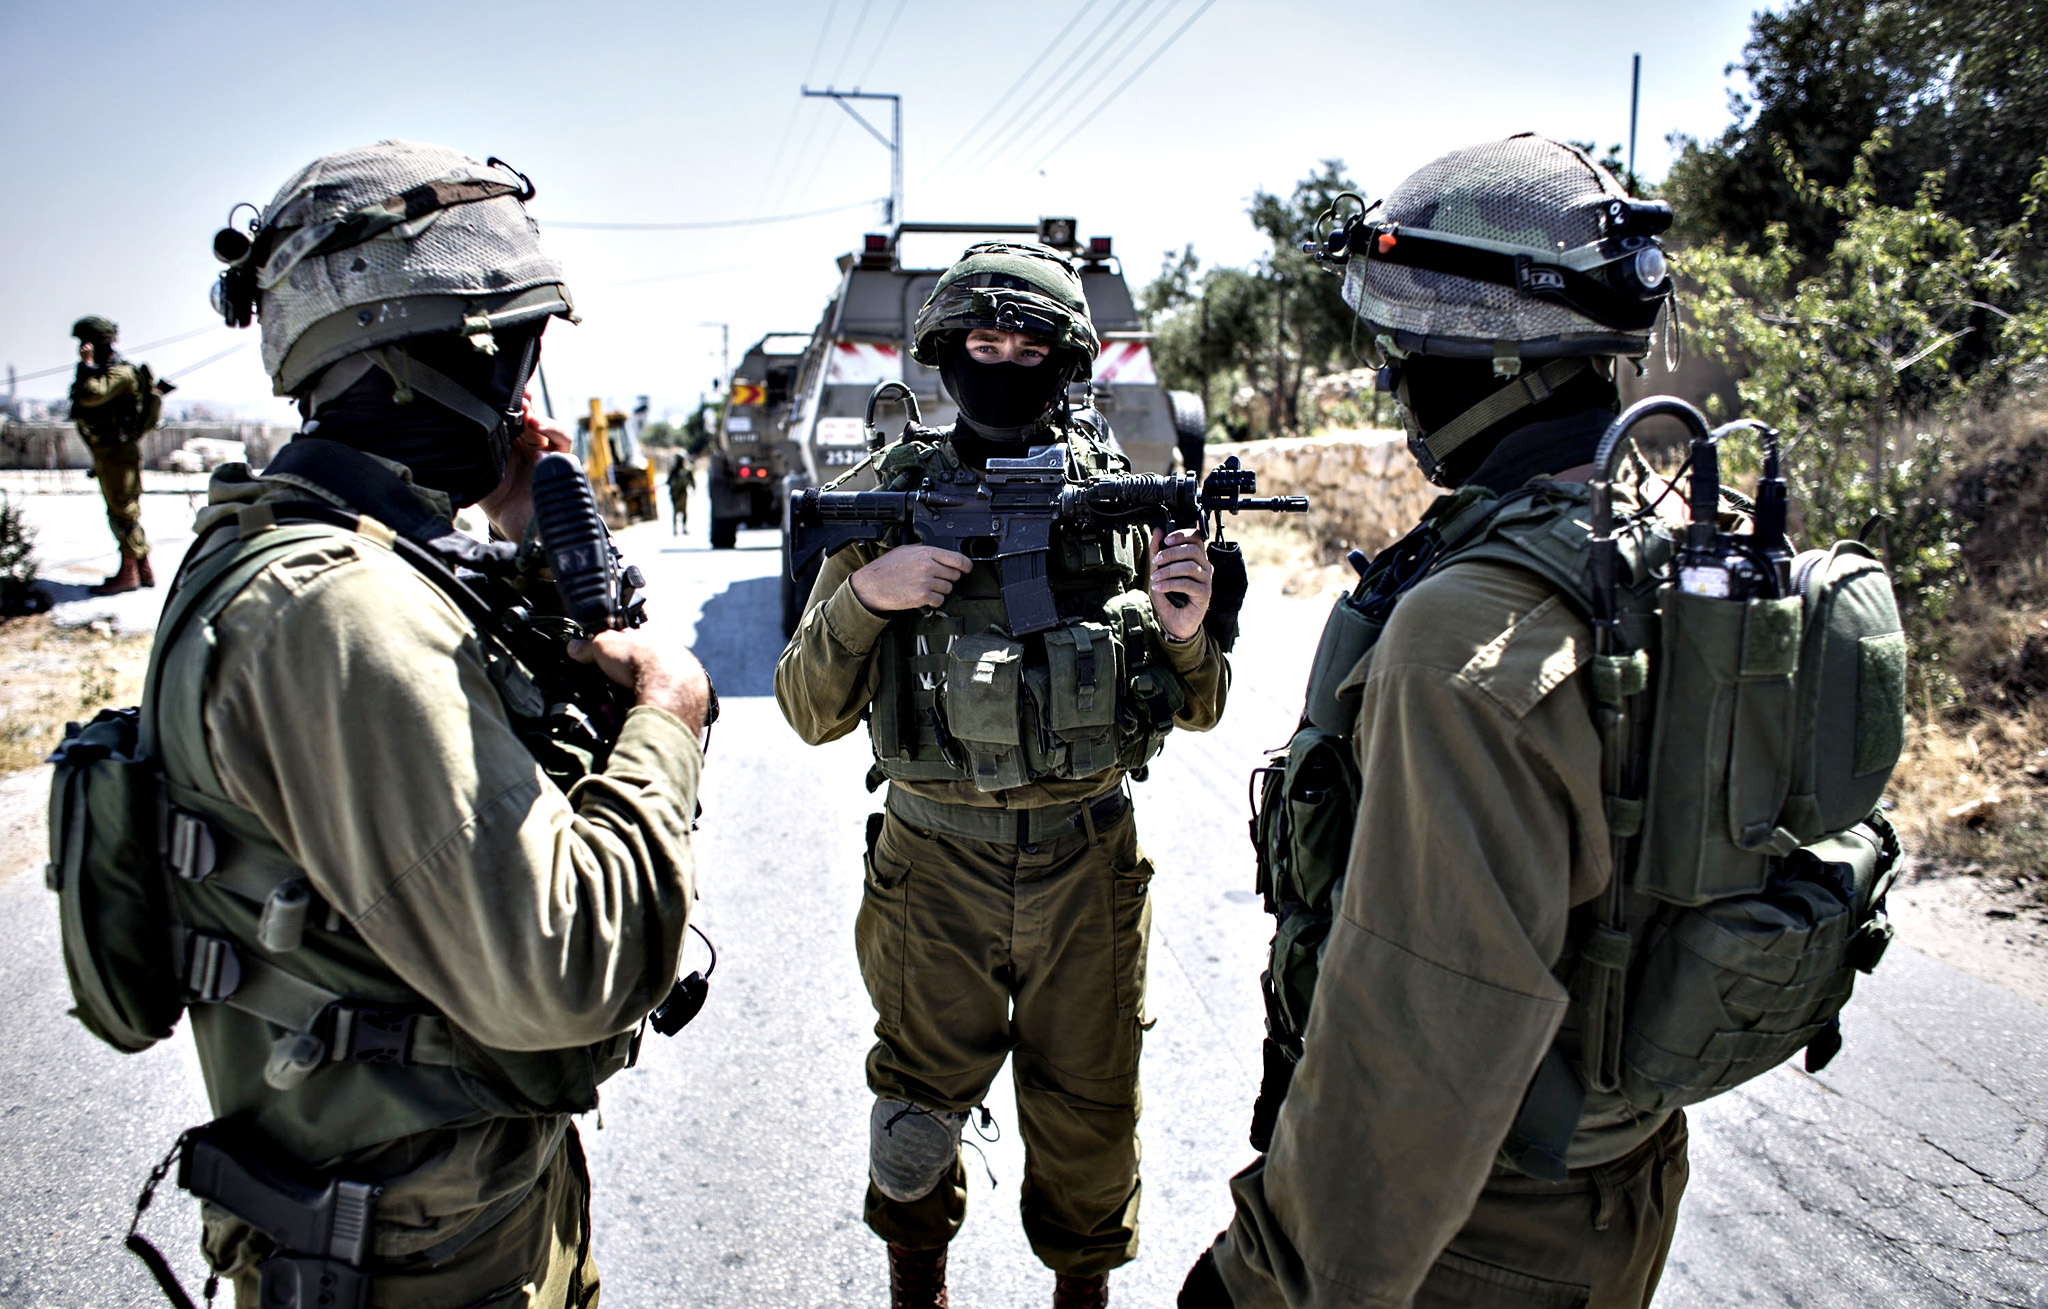 An Israeli soldier conducts a search mission during the sixth day into the search of three missing teenagers June 18, 2014 in Hebron, West Bank. Israeli soldiers have so far detained more than 210 suspects in the search for three teenagers who went missing in Jewish settlements in the West Bank late last week.